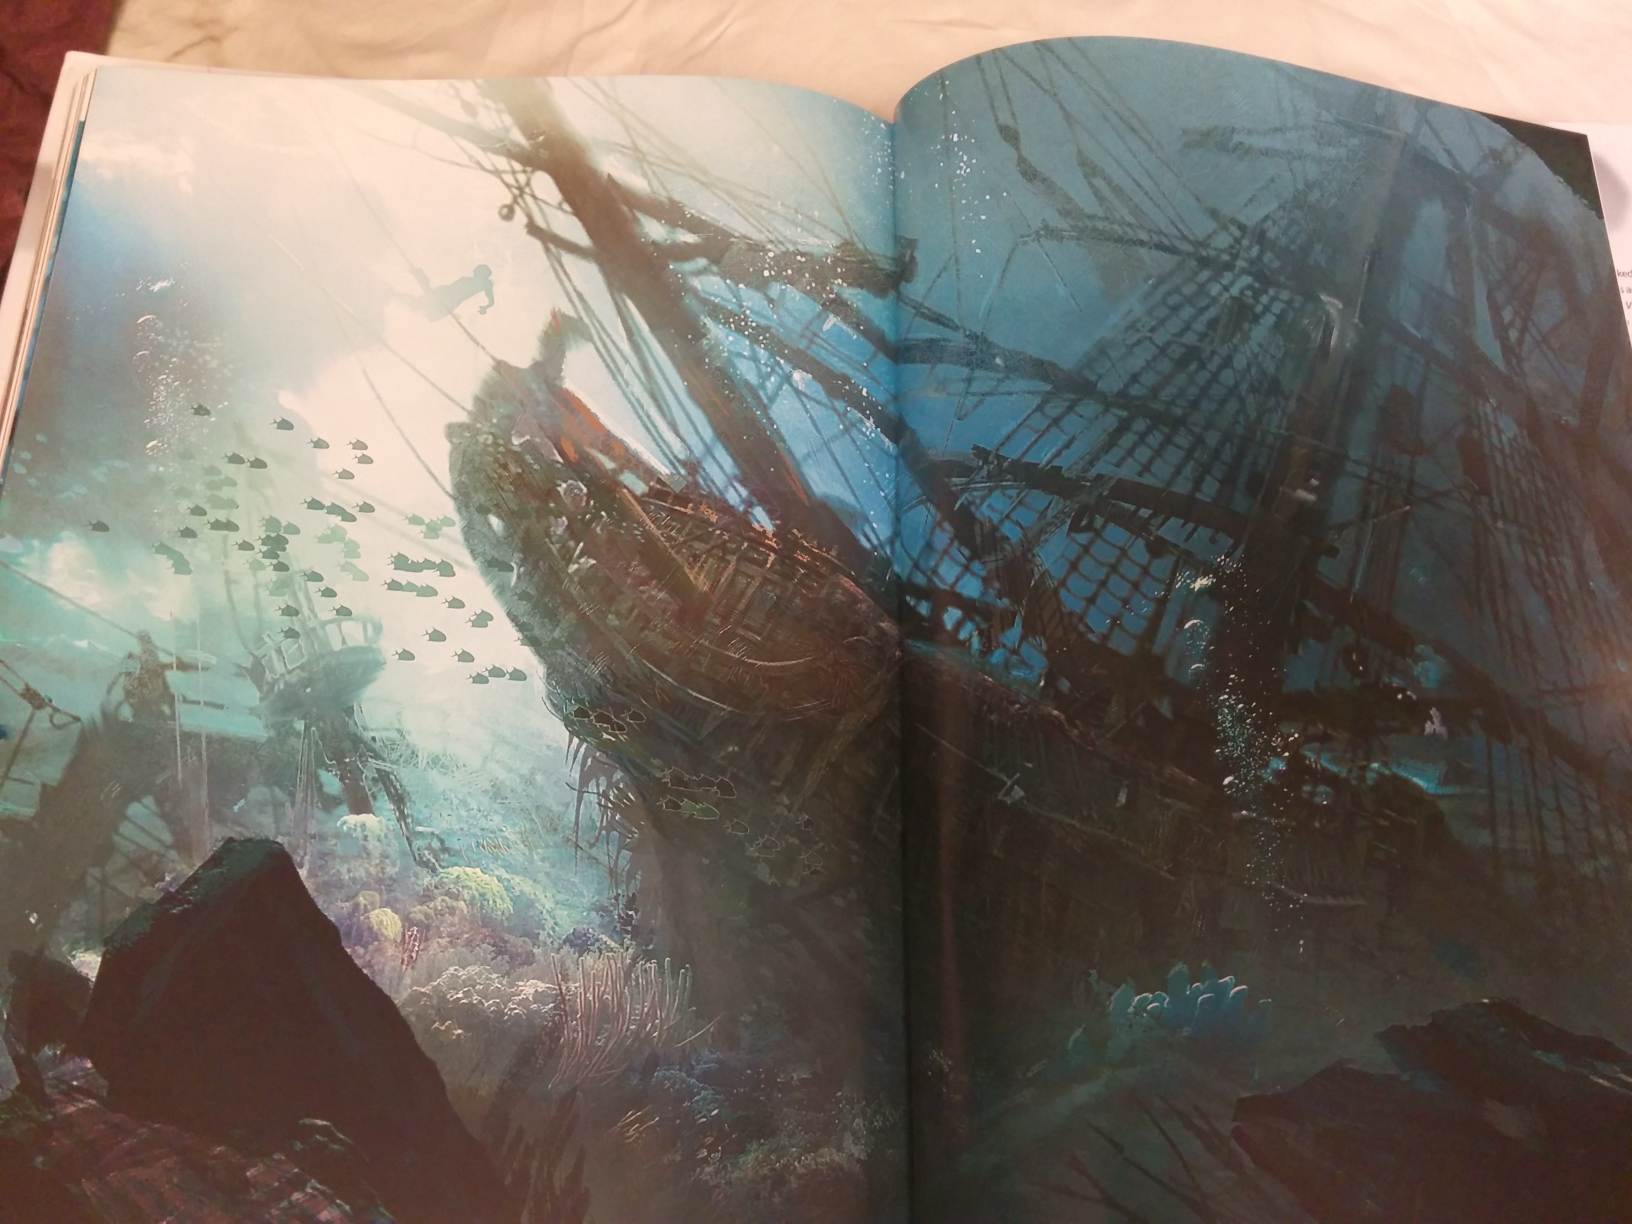 aciv-art-sunken-ship